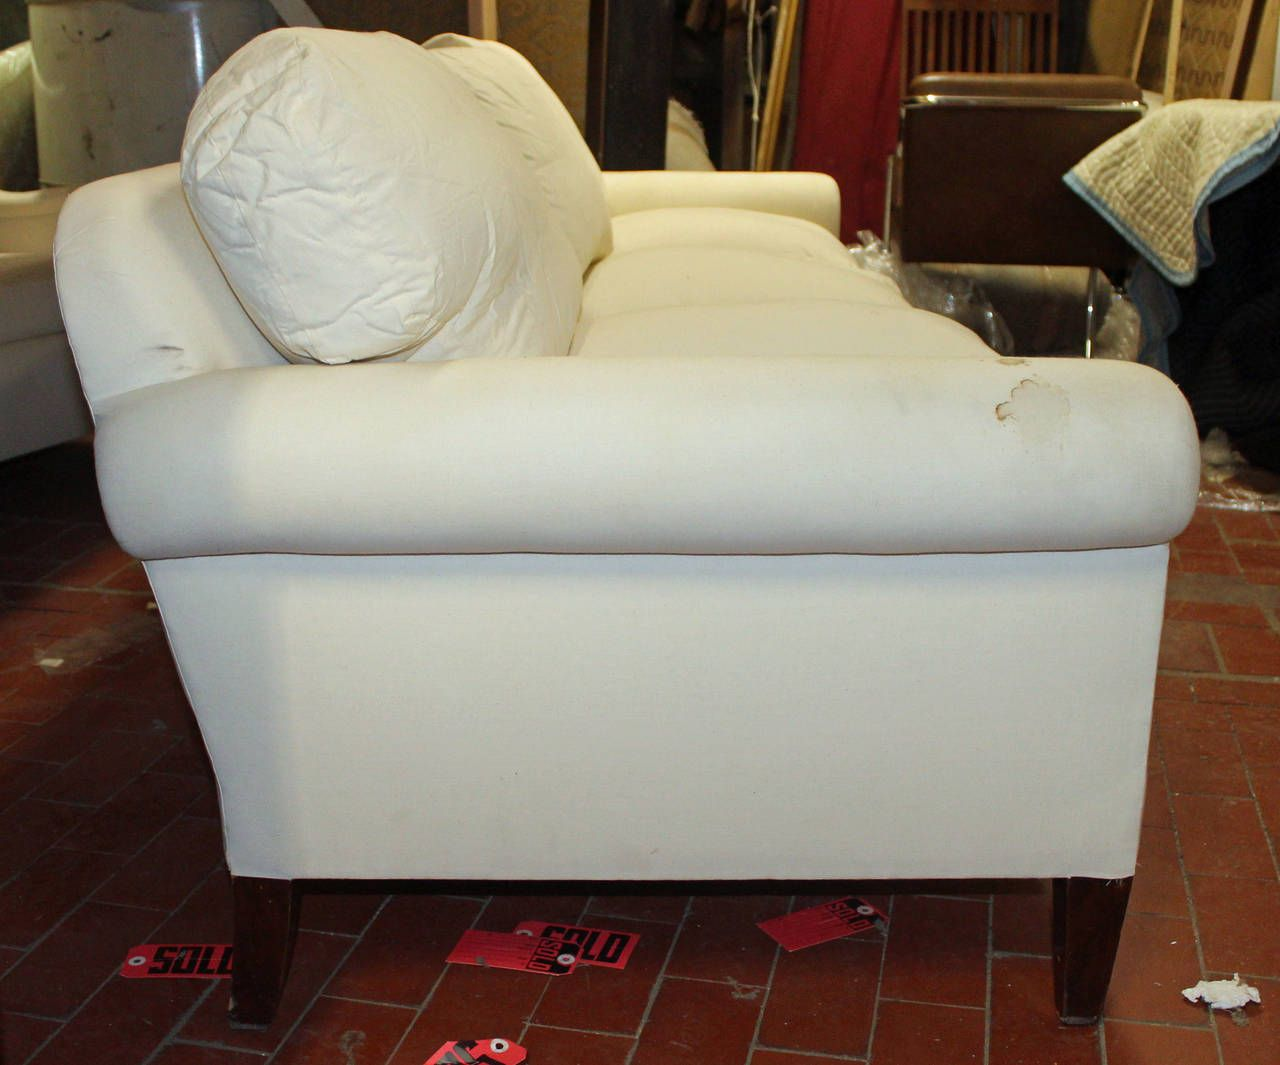 Objectiques dealer in lic reasonable prices elegant very comfortable fully refurbished sofa in muslin from a unique collection of antique and modern